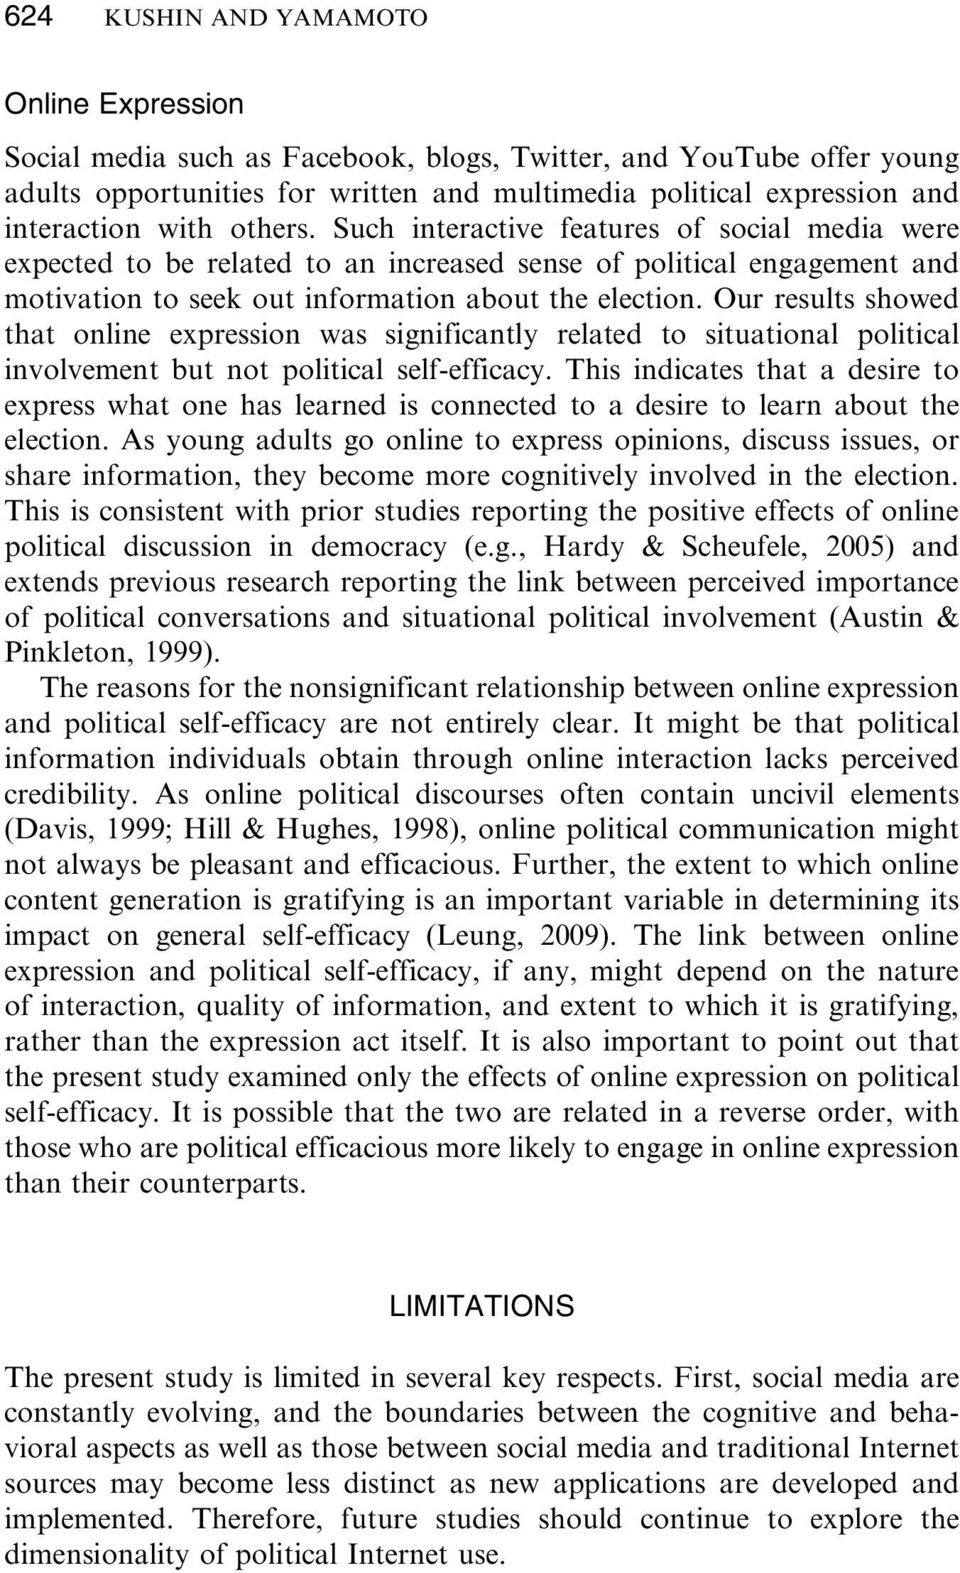 Our results showed that online expression was significantly related to situational political involvement but not political self-efficacy.